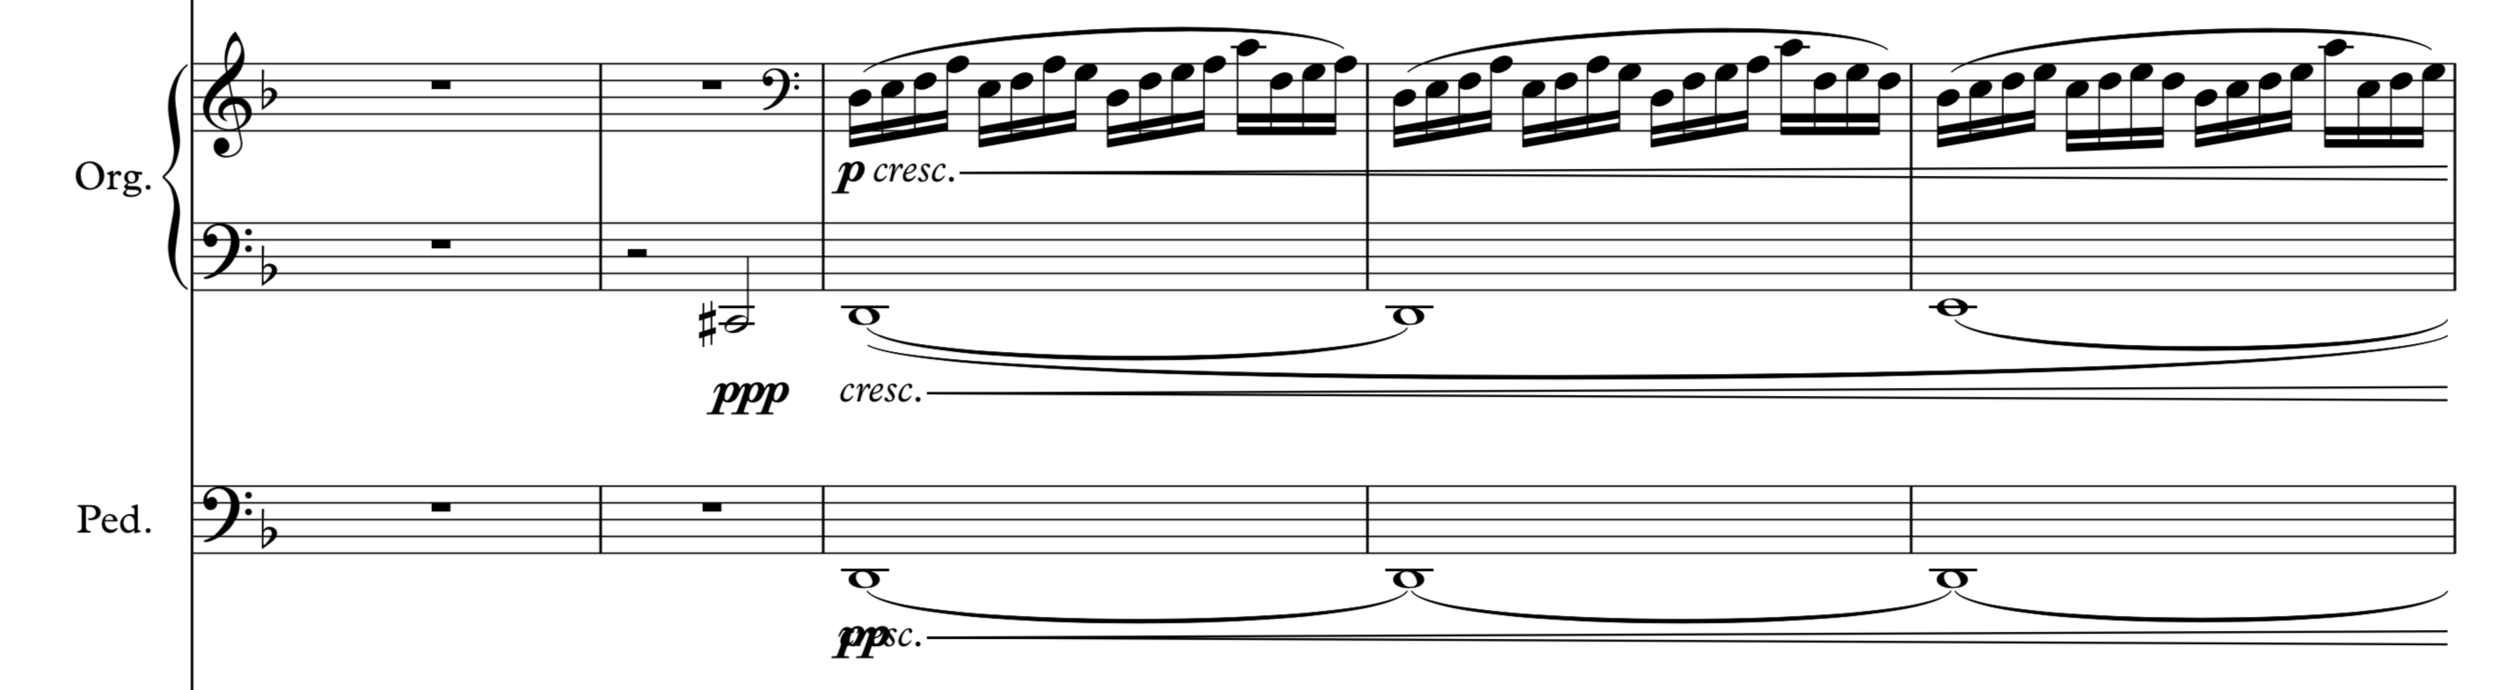 Introduction of the organ and it's counter melody.